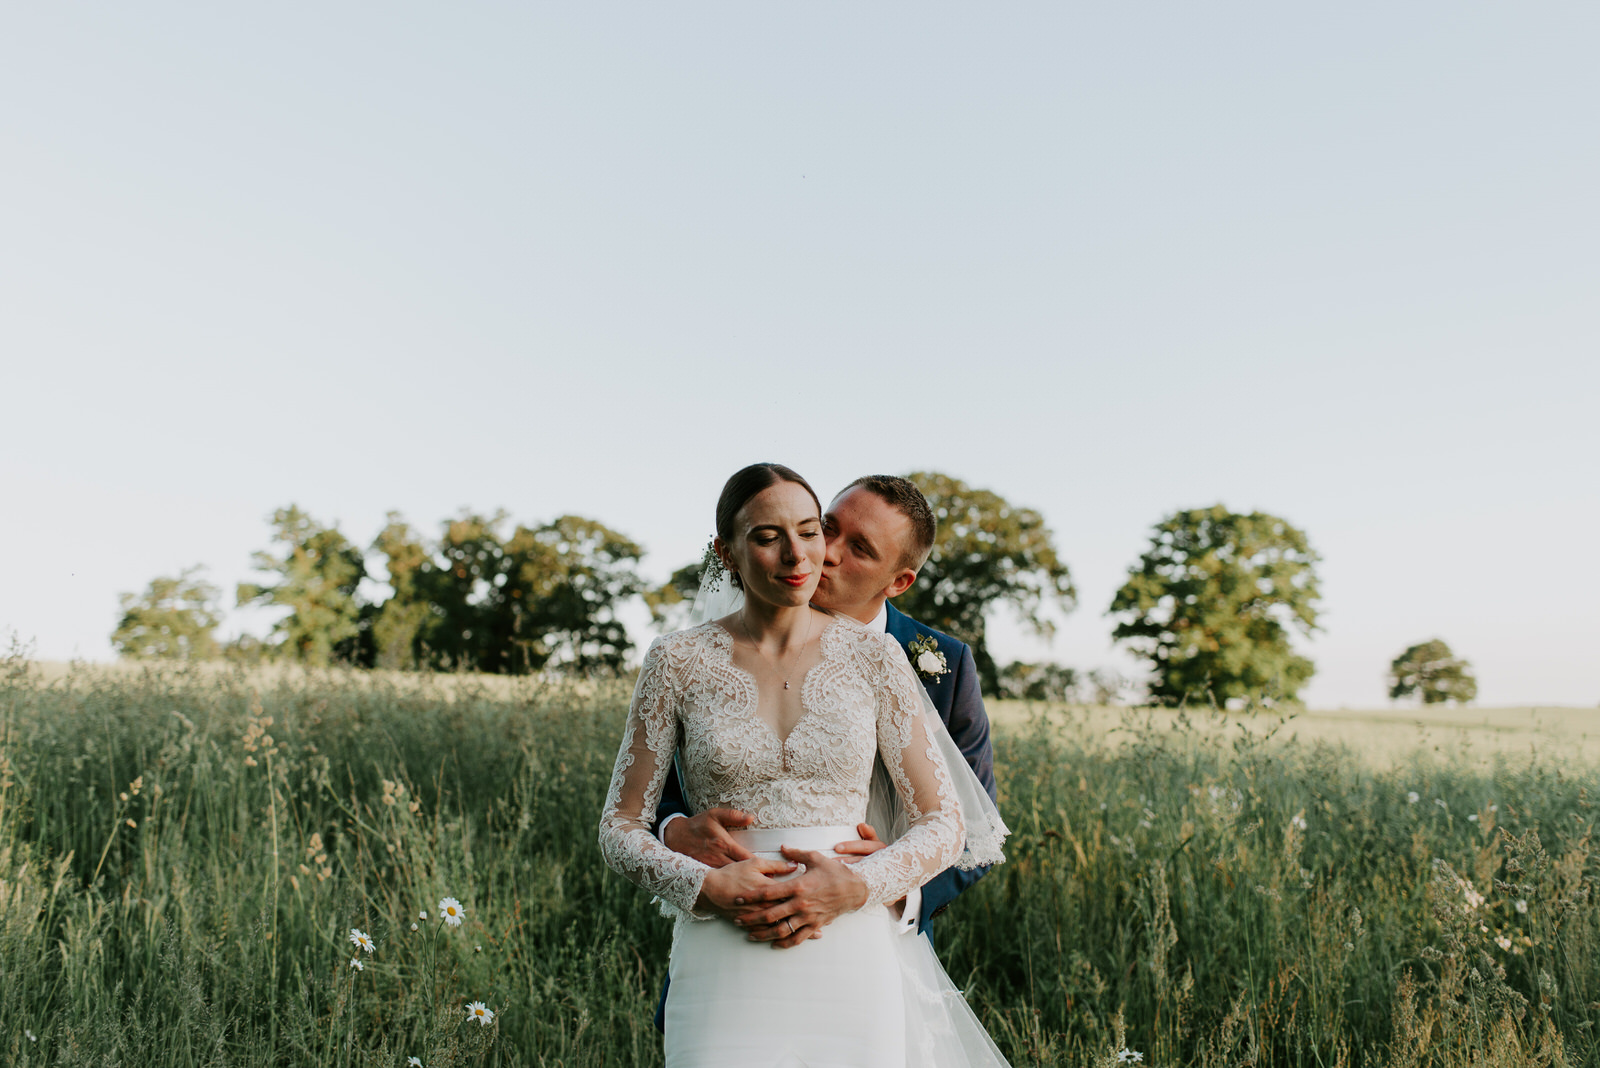 Intimate_Warwickshire_Countryside_Wedding_UK_90.JPG